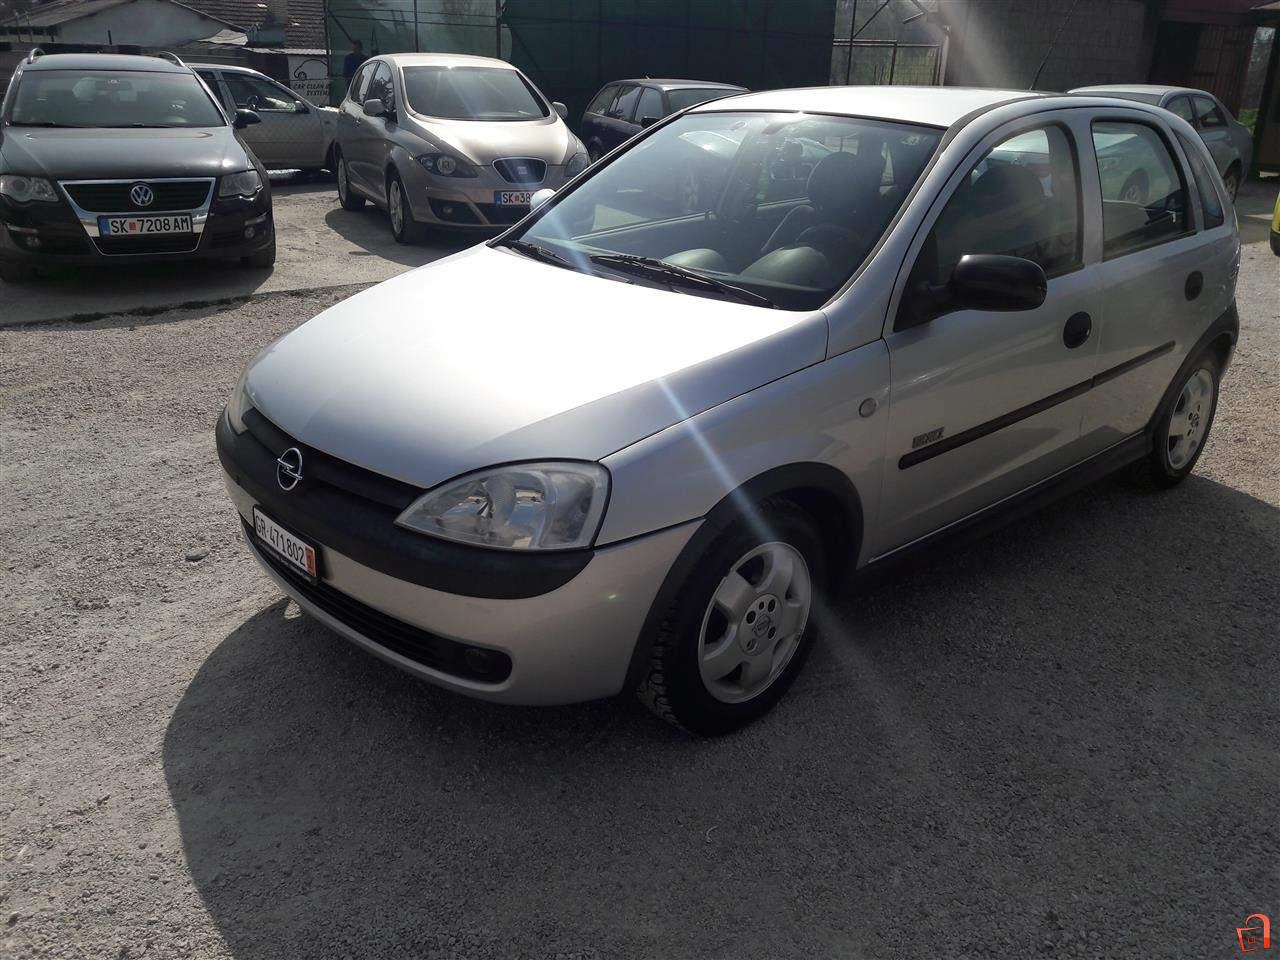 ad opel corsa 1 4 66 kw 90 ps ch for sale skopje gjorce petrov vehicles. Black Bedroom Furniture Sets. Home Design Ideas